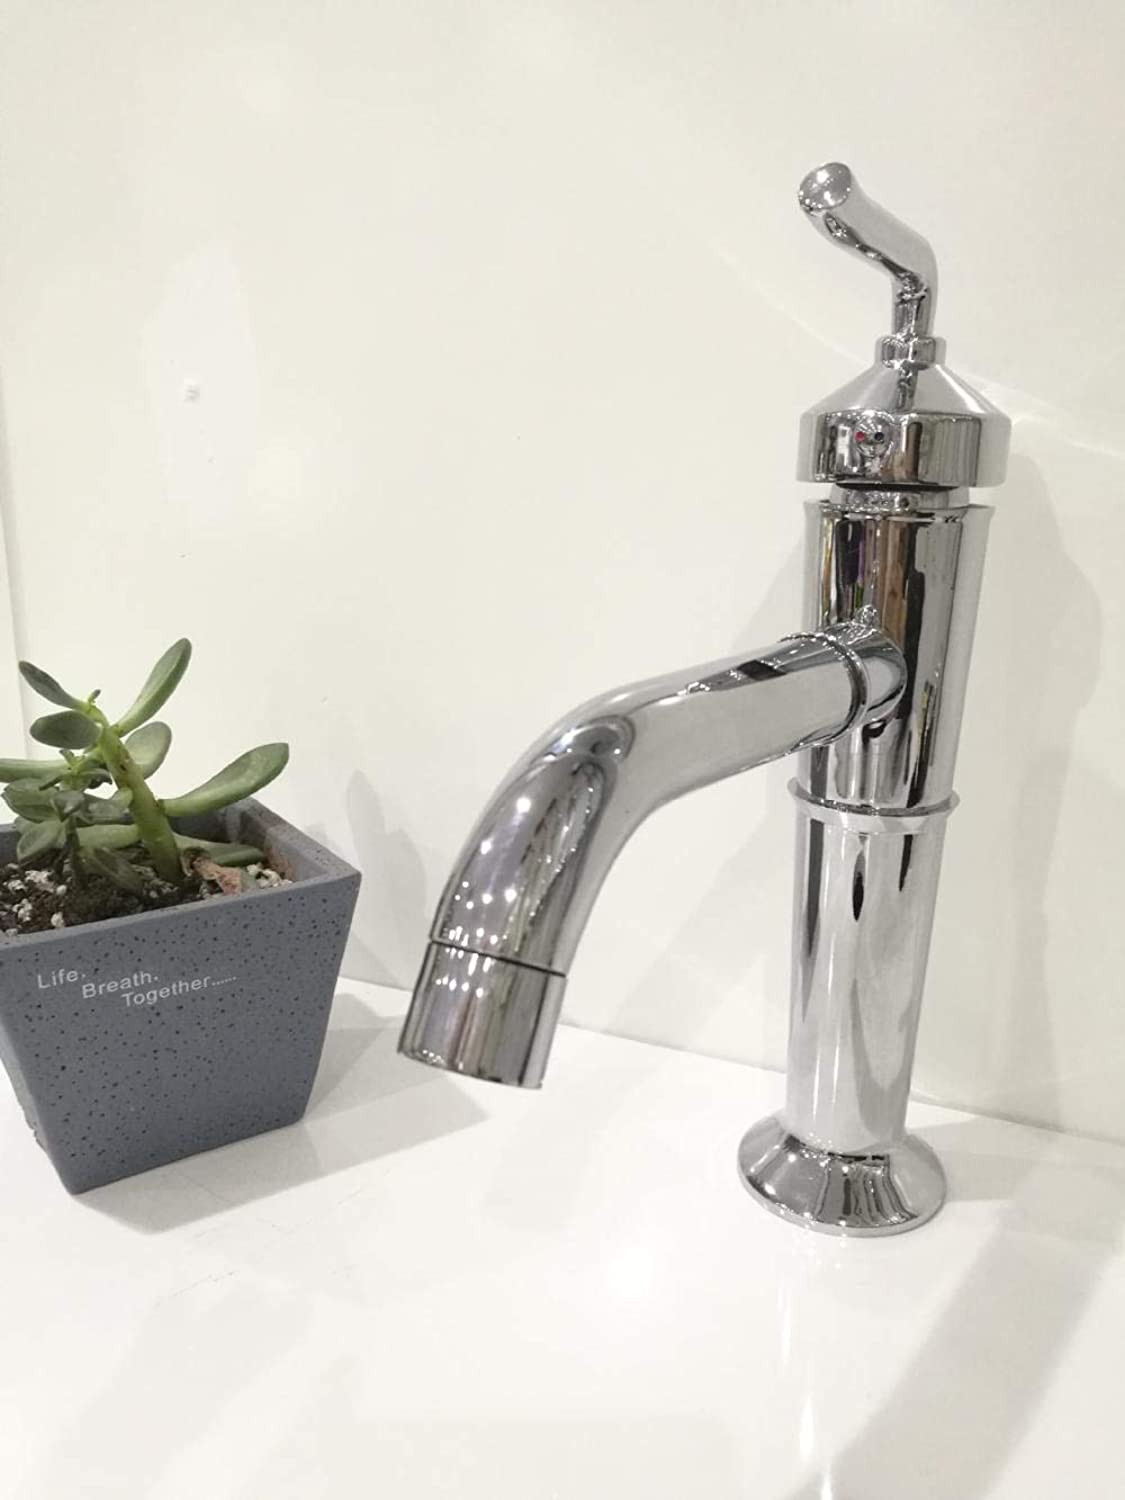 Faucet Chrome Sink Hot And Cold Basin Faucet_Bathroom Hot And Cold Basin Copper Plating Wash Basin Faucet